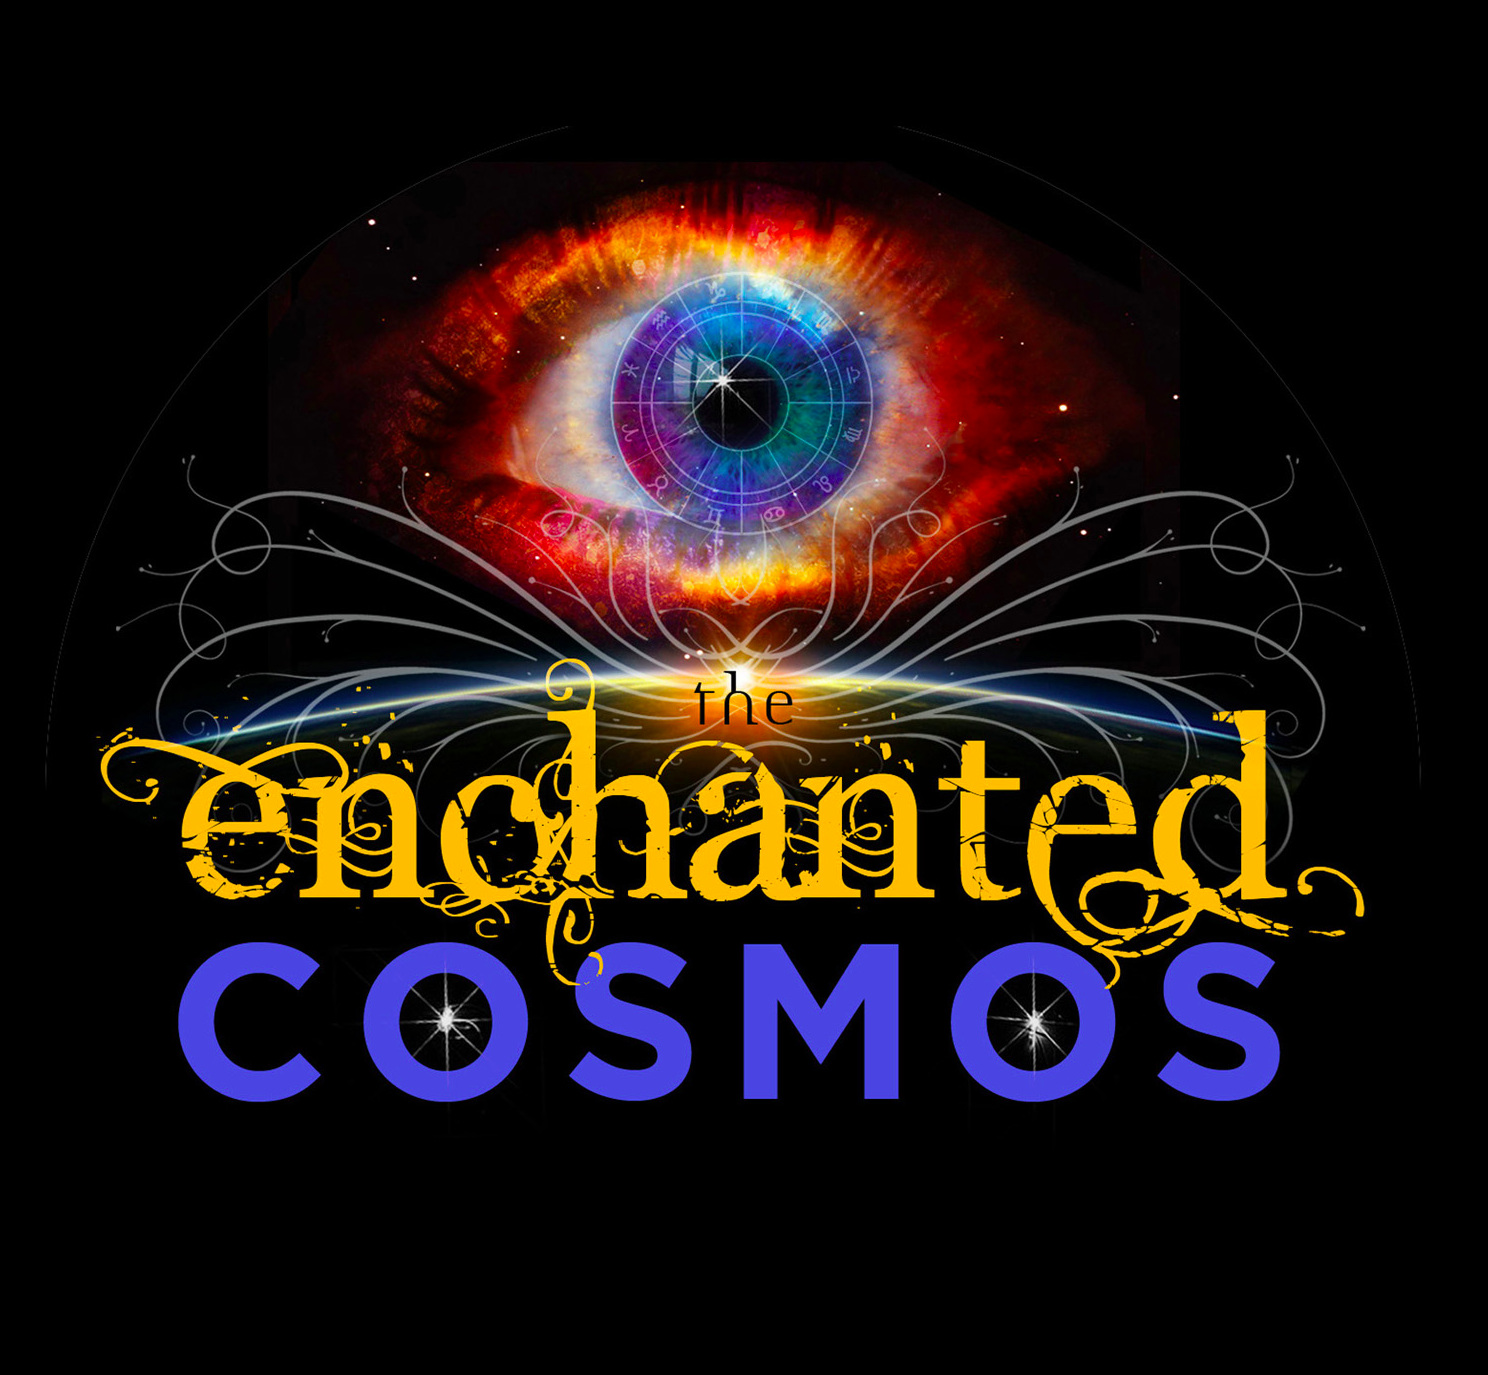 The Enchanted Cosmos - 26:23